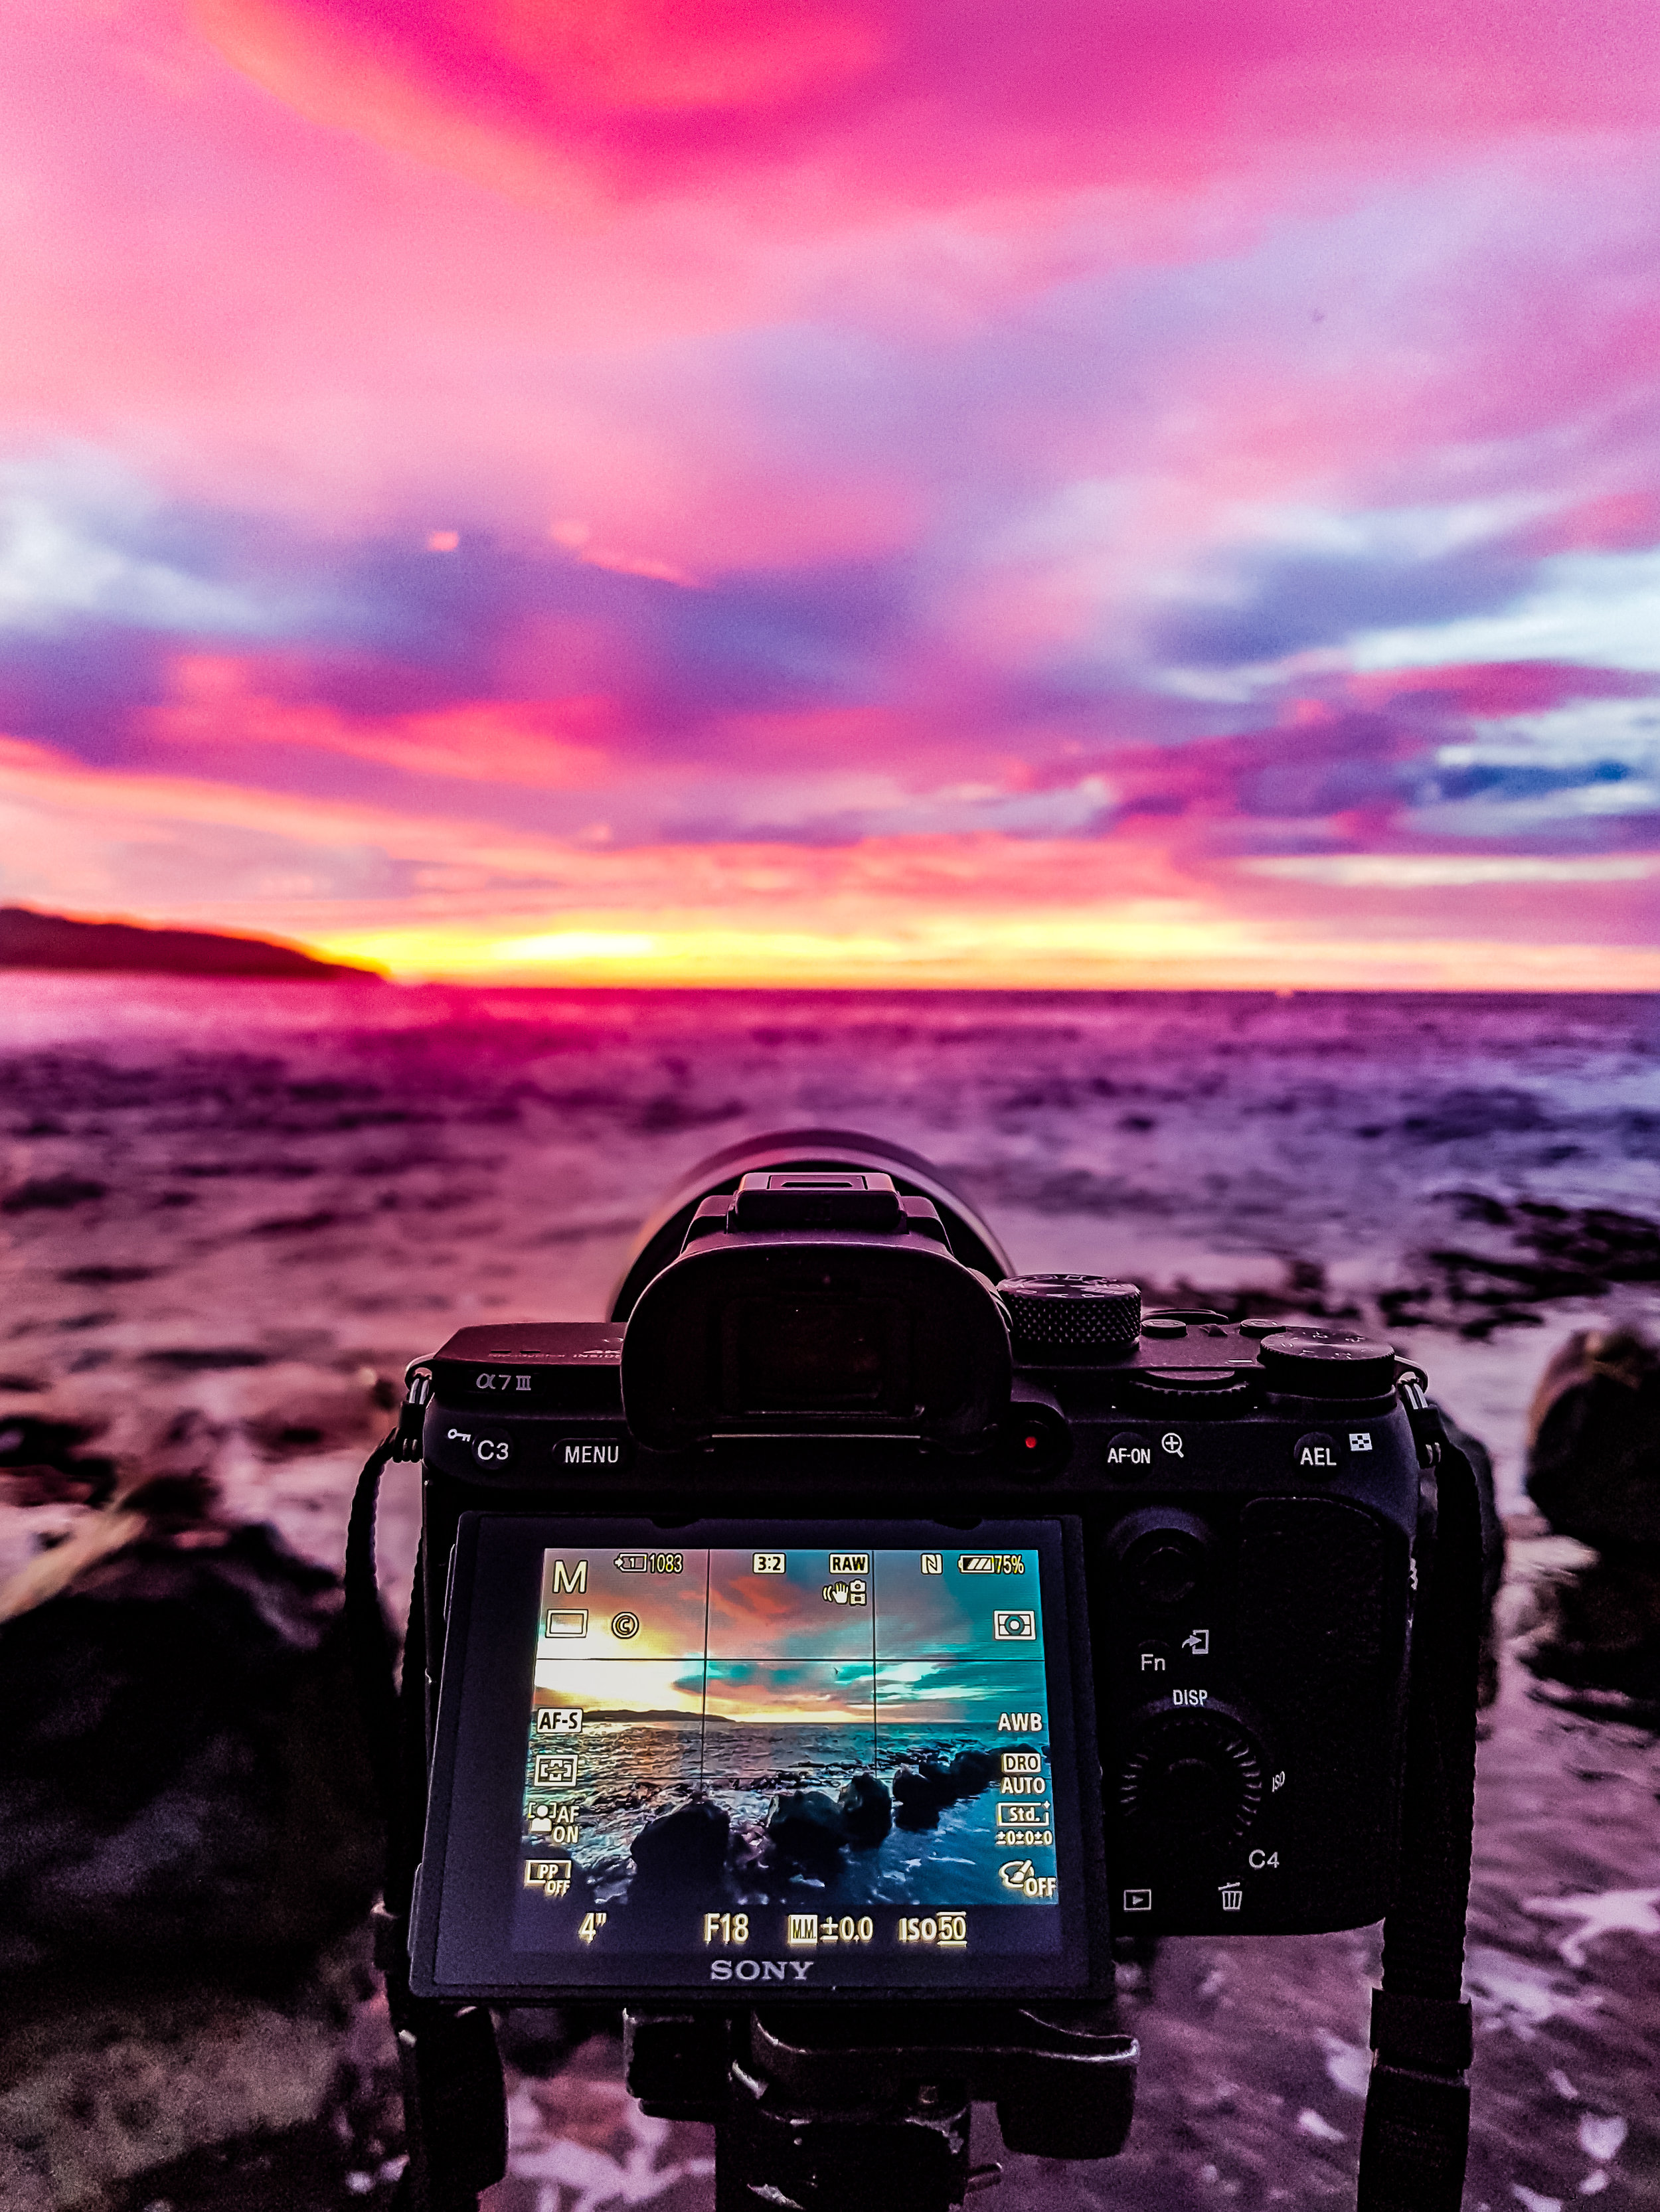 Signing off... - with the Sony at work last week capturing an epic sunrise from the breakwater by the Salt Water Pool at St Clair. (Image follows)